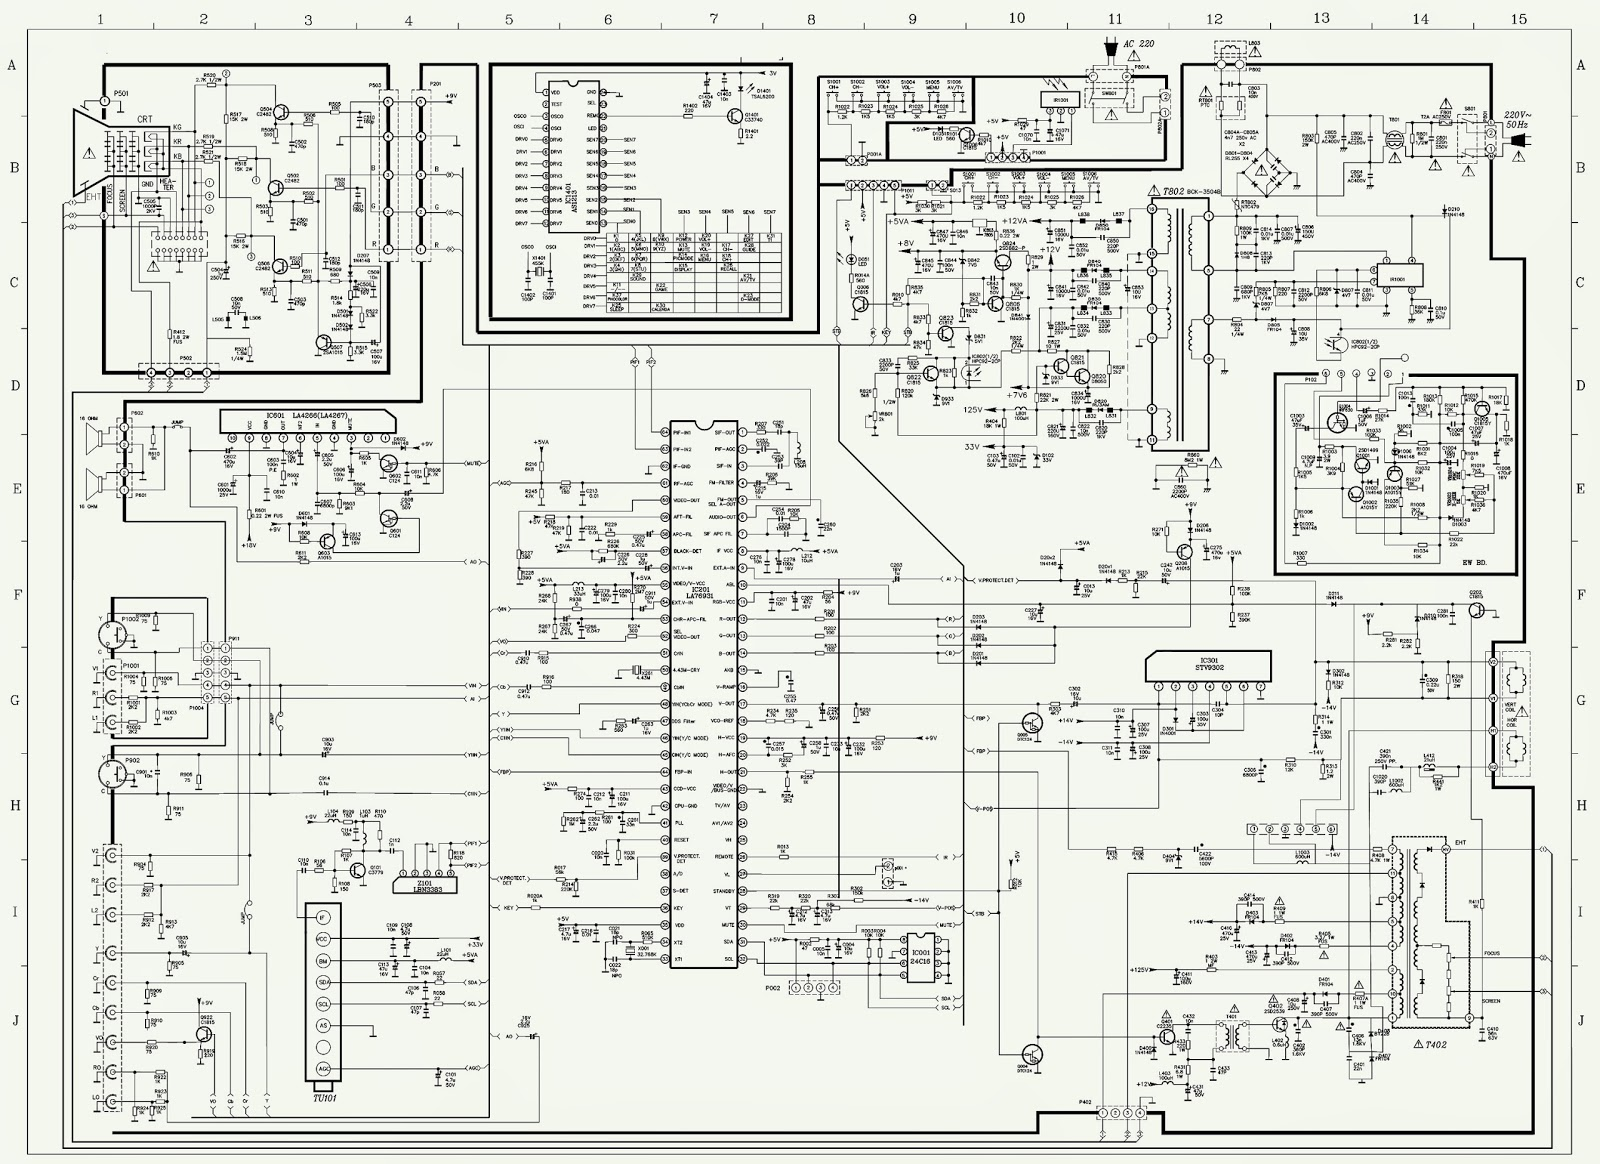 1.bmp ctv circuit diagram using la76931 ic electro help ic schematic diagram at couponss.co